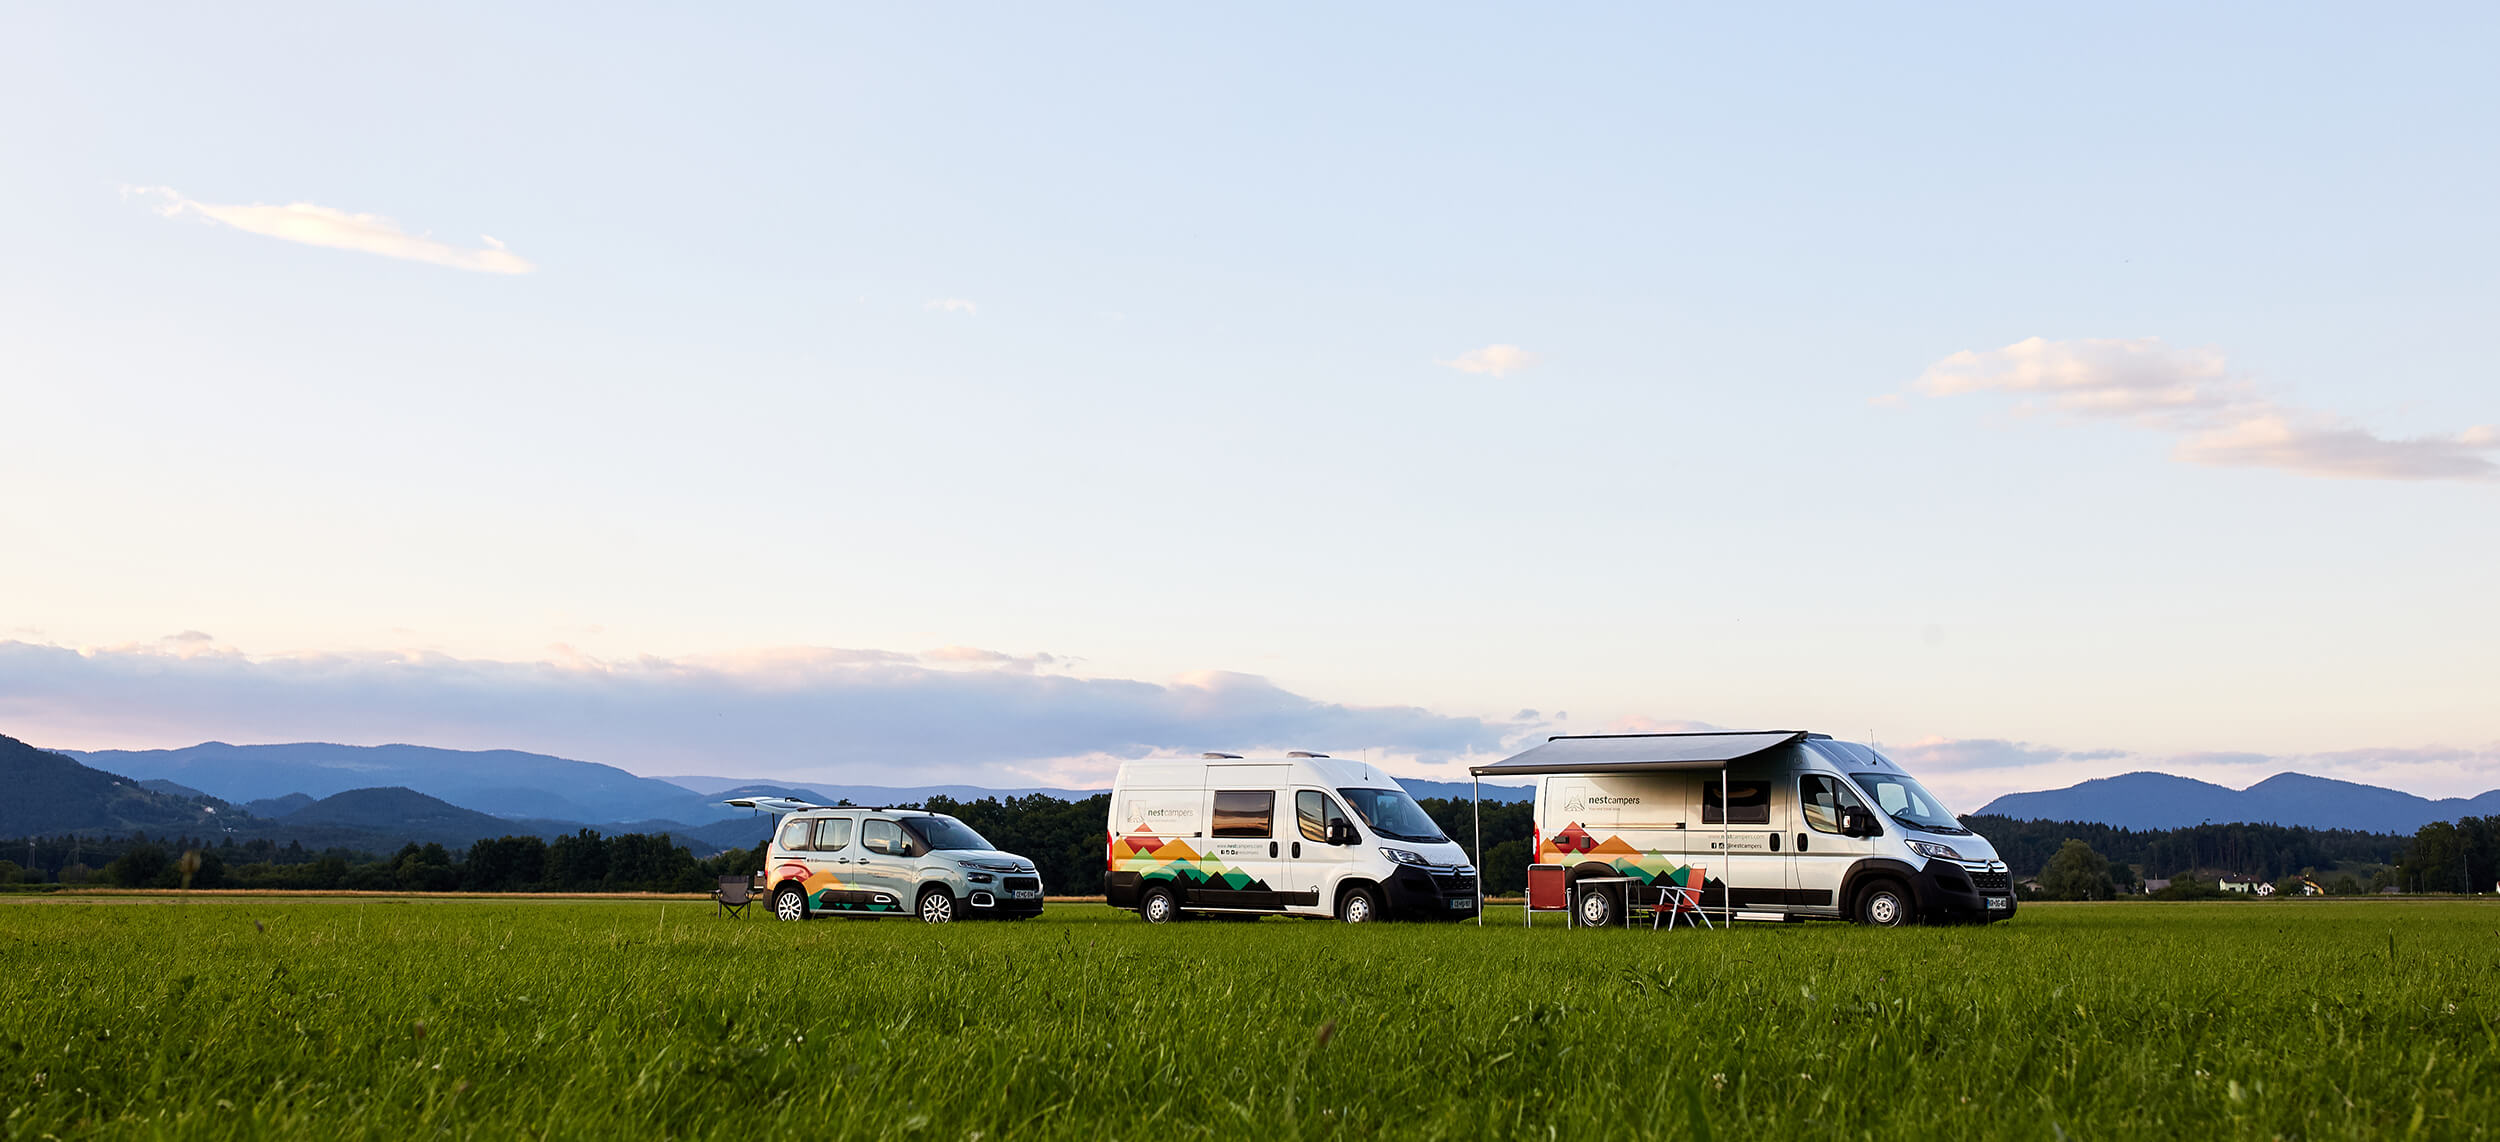 all campervans of NestCampers